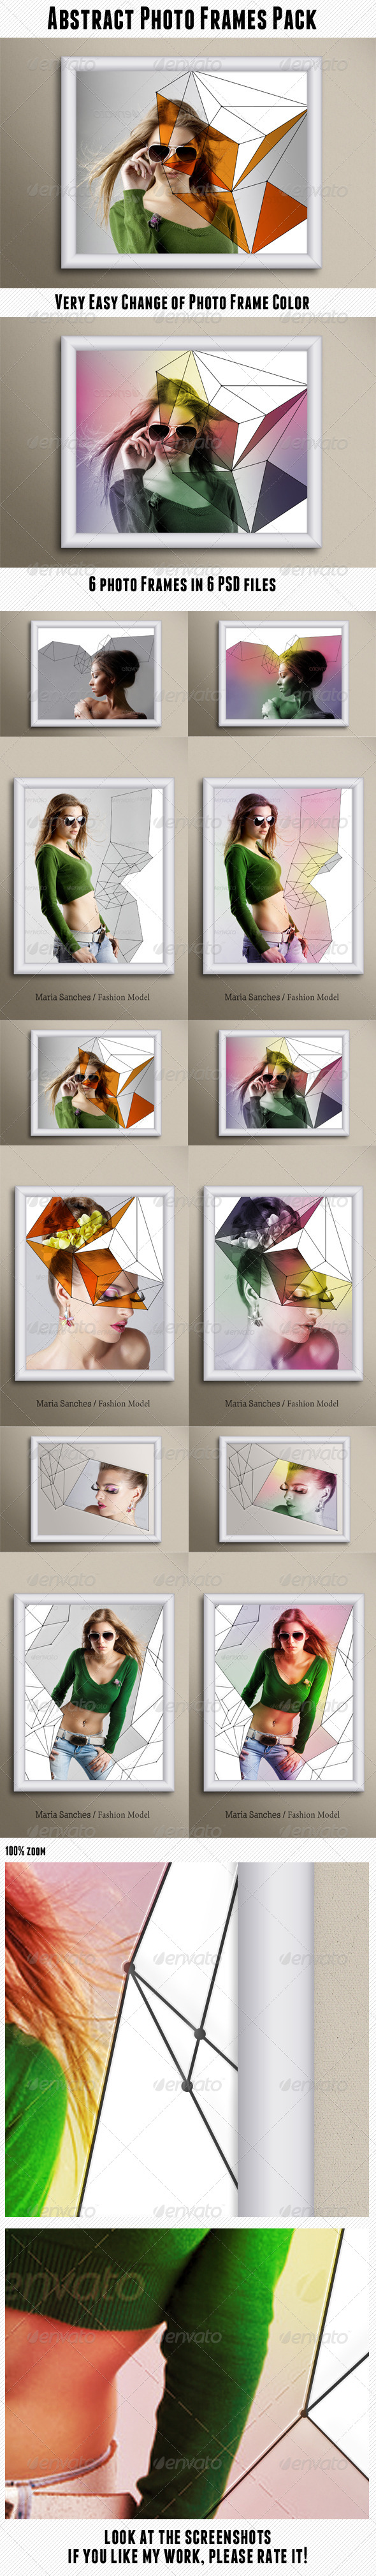 GraphicRiver Abstract Photo Frames Pack 6577185